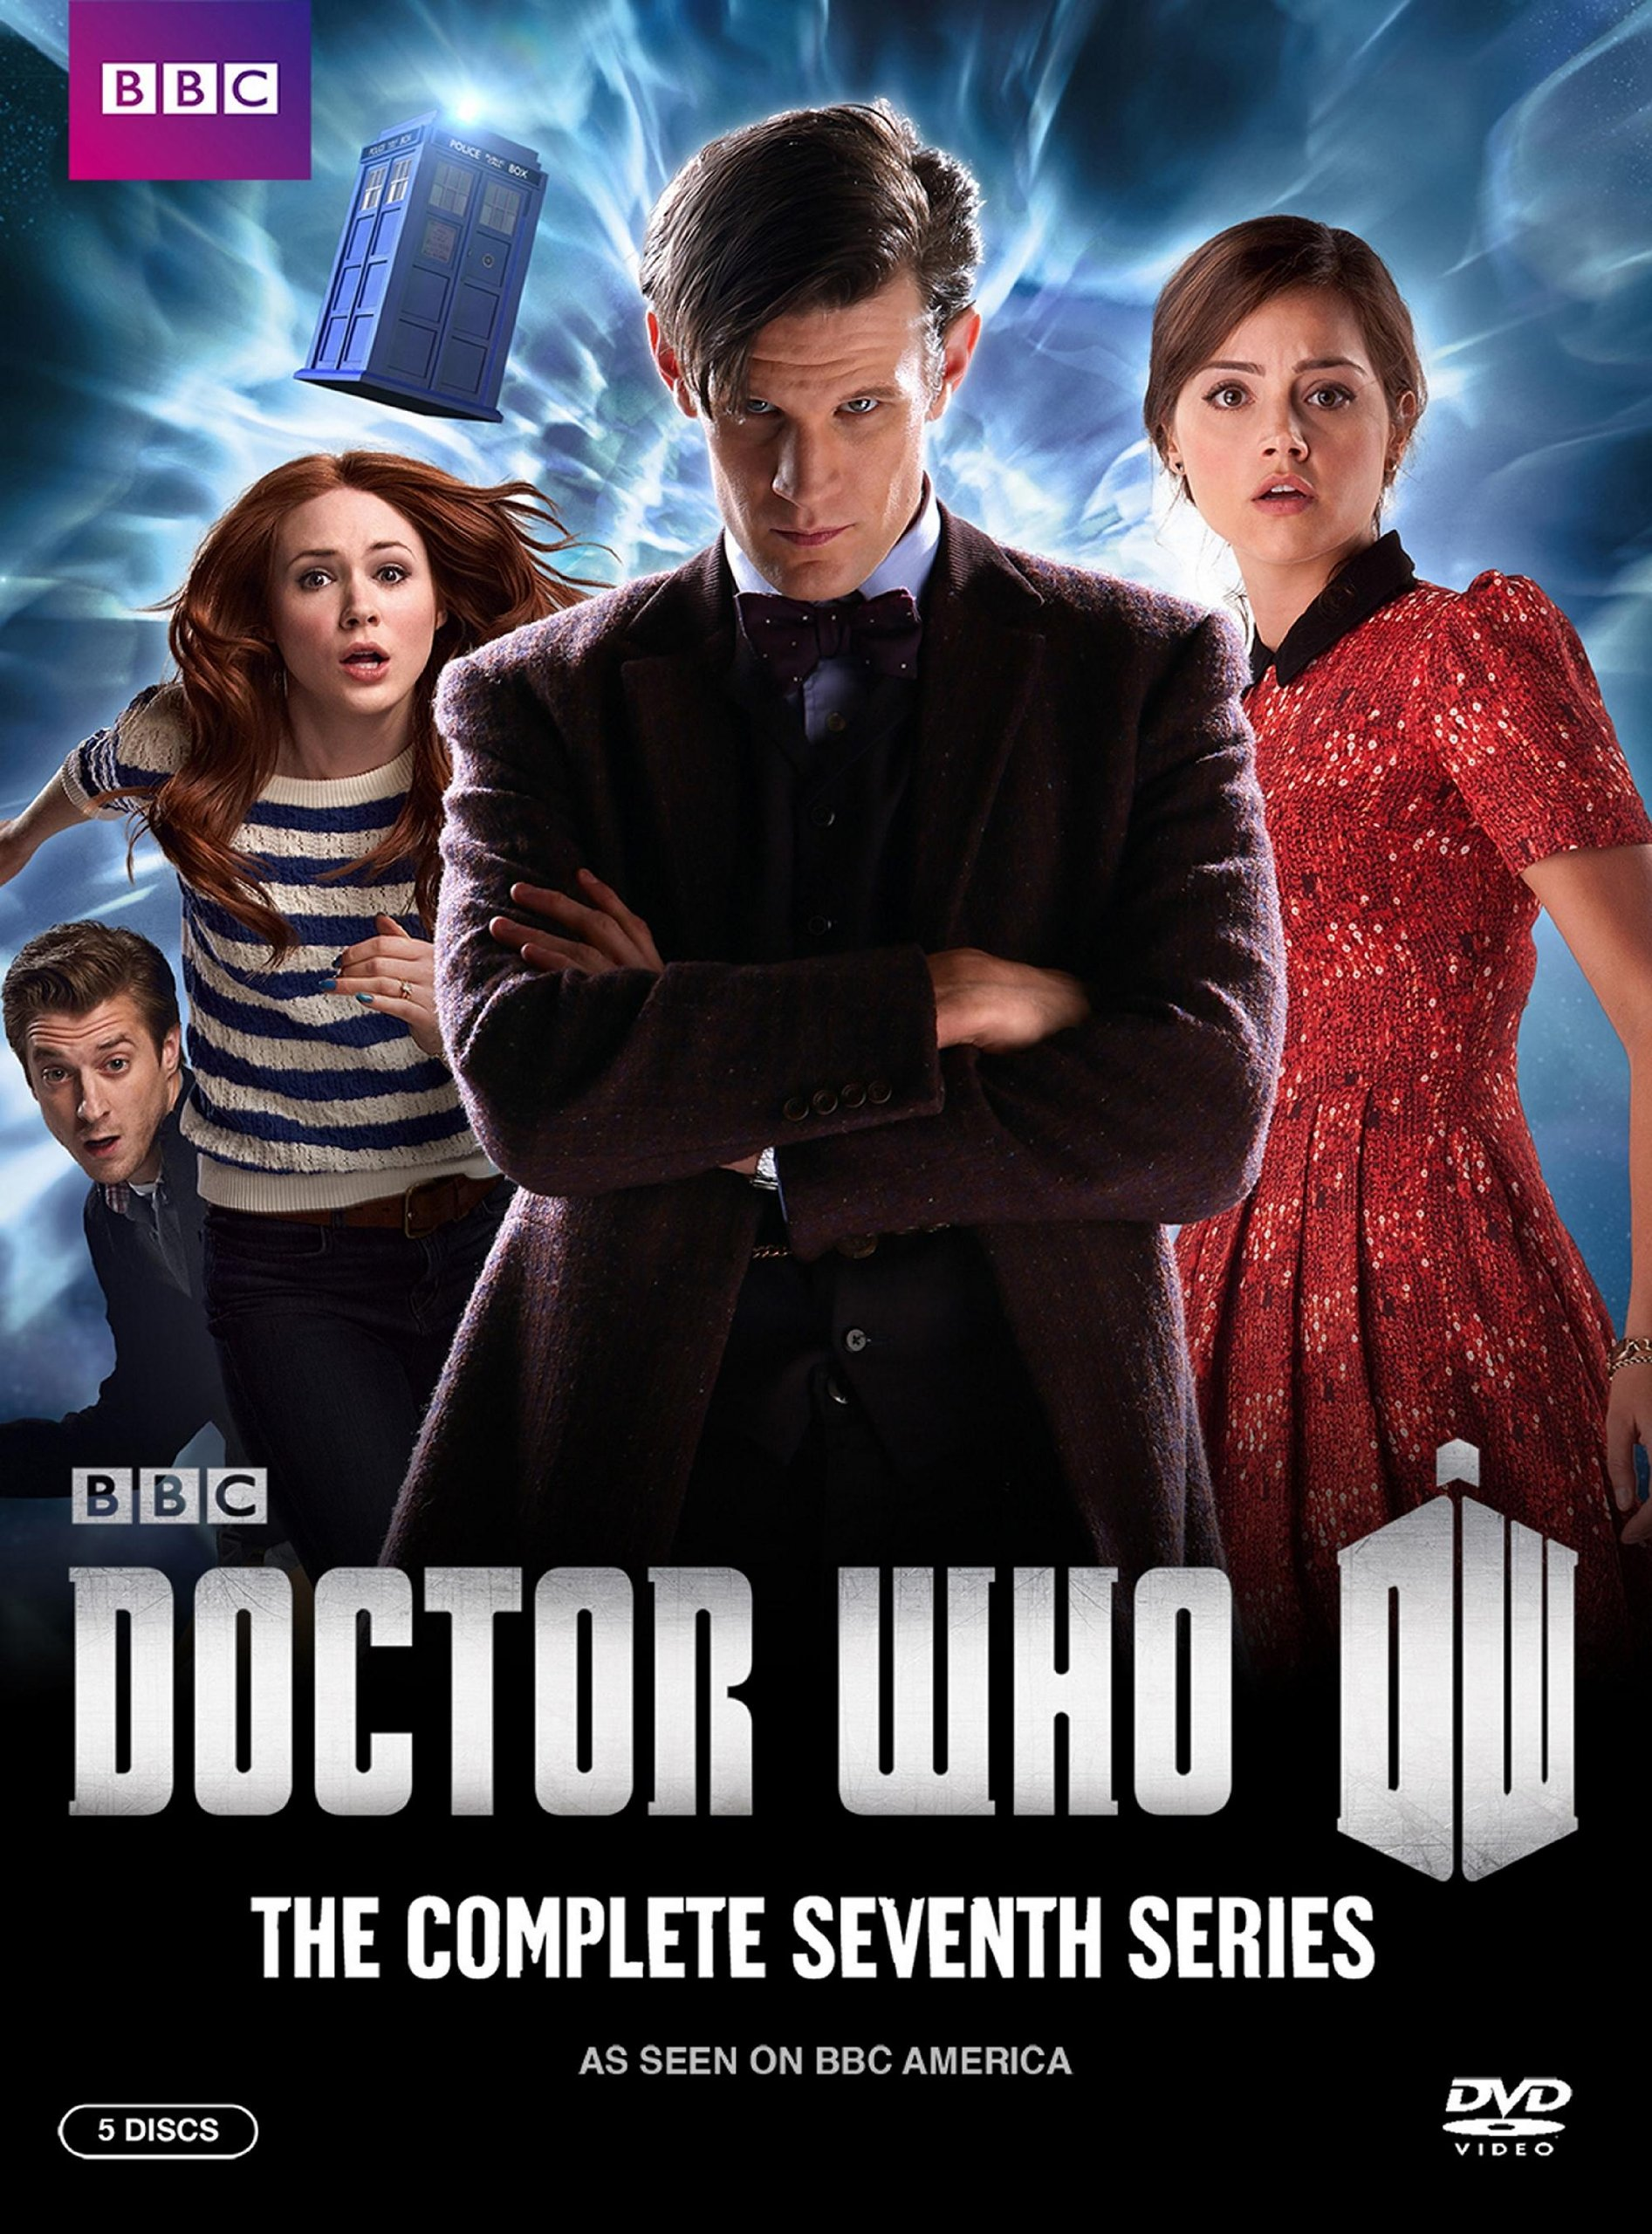 Doctor Who: Series 7 (2013) by BBC Warner